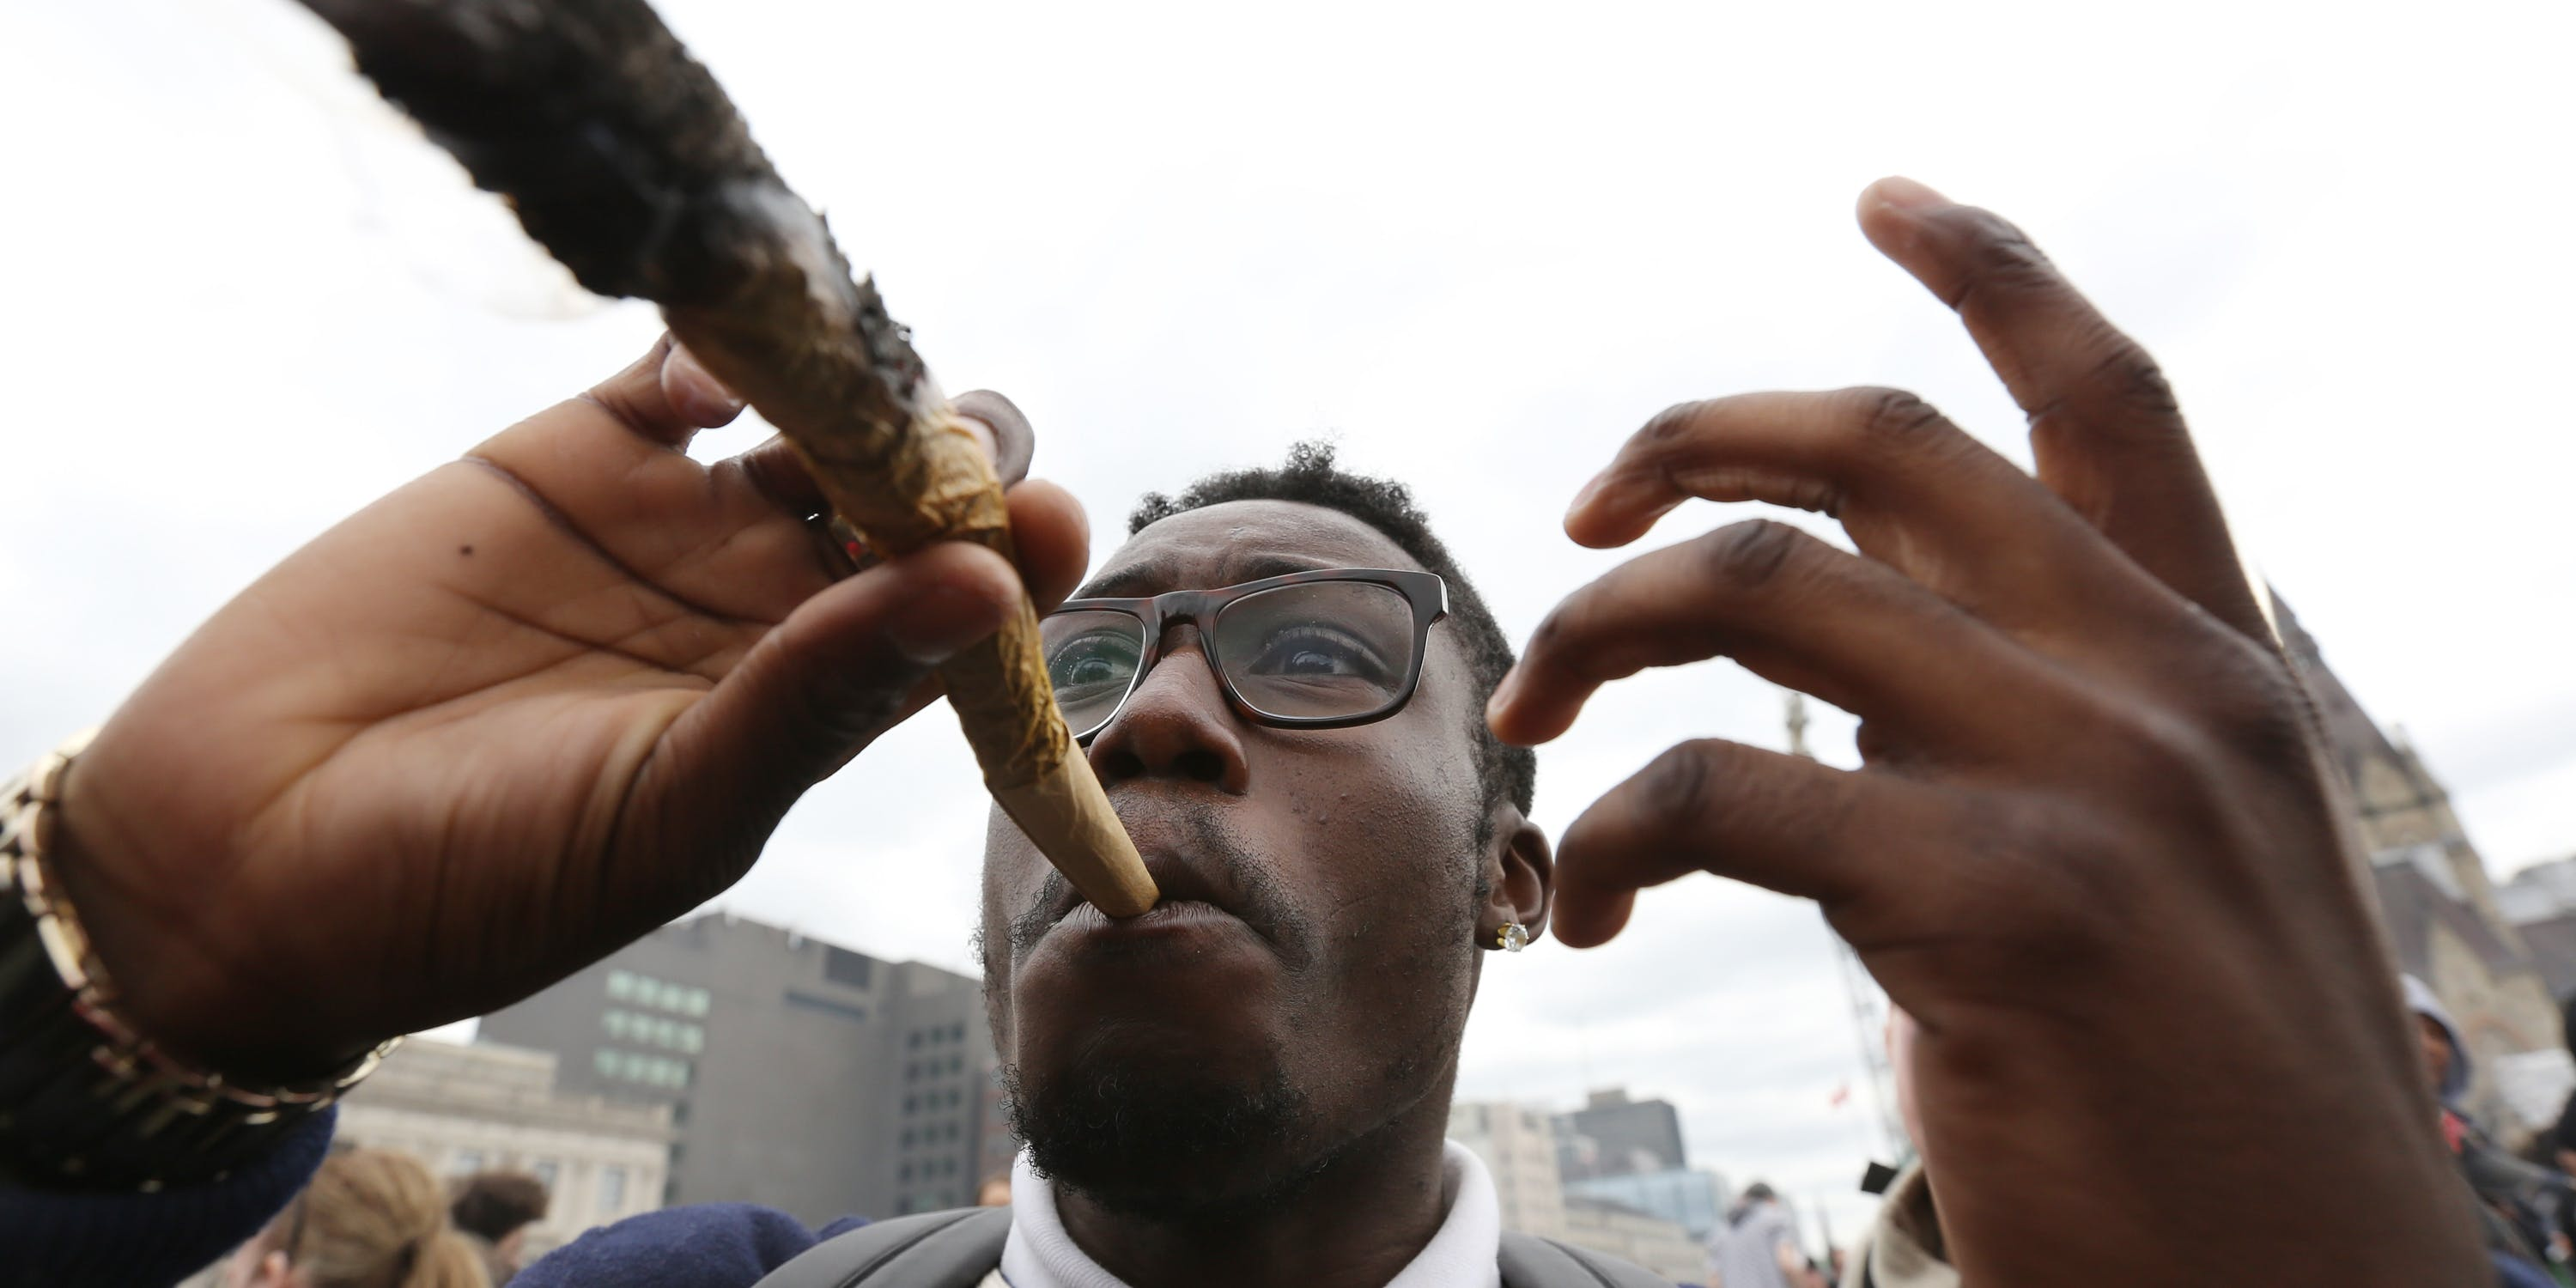 Canadians Are Smoking Twice As Much Weed Today As They Did In The 80s: Survey